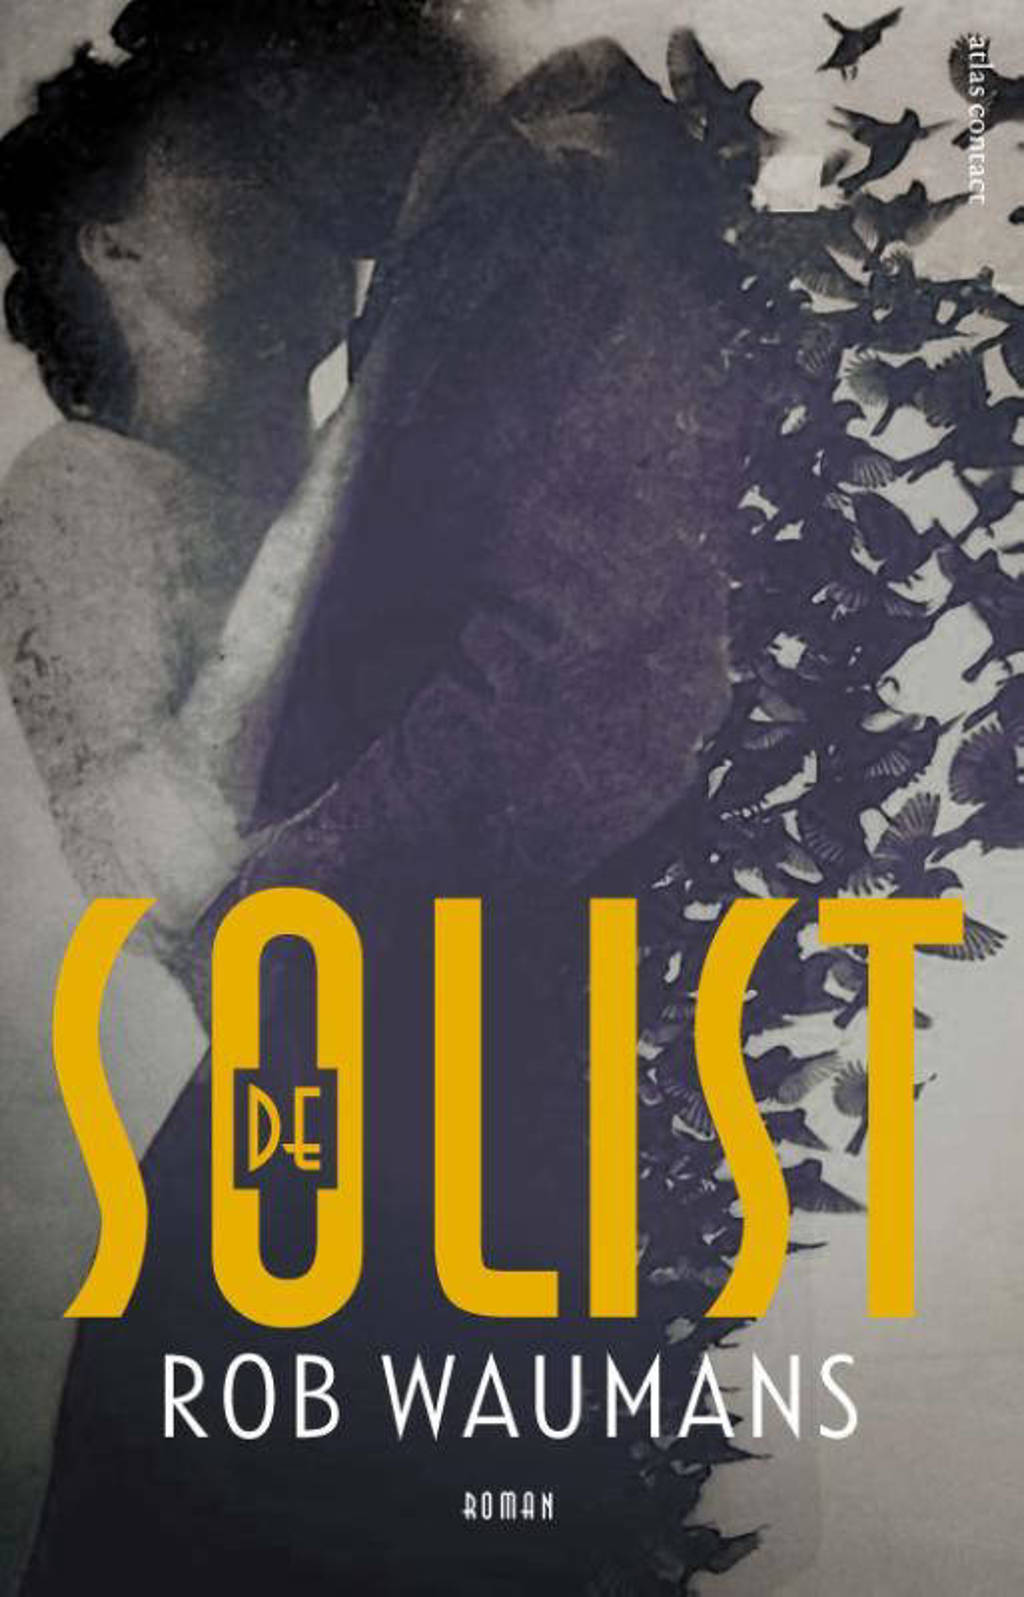 De solist - Rob Waumans